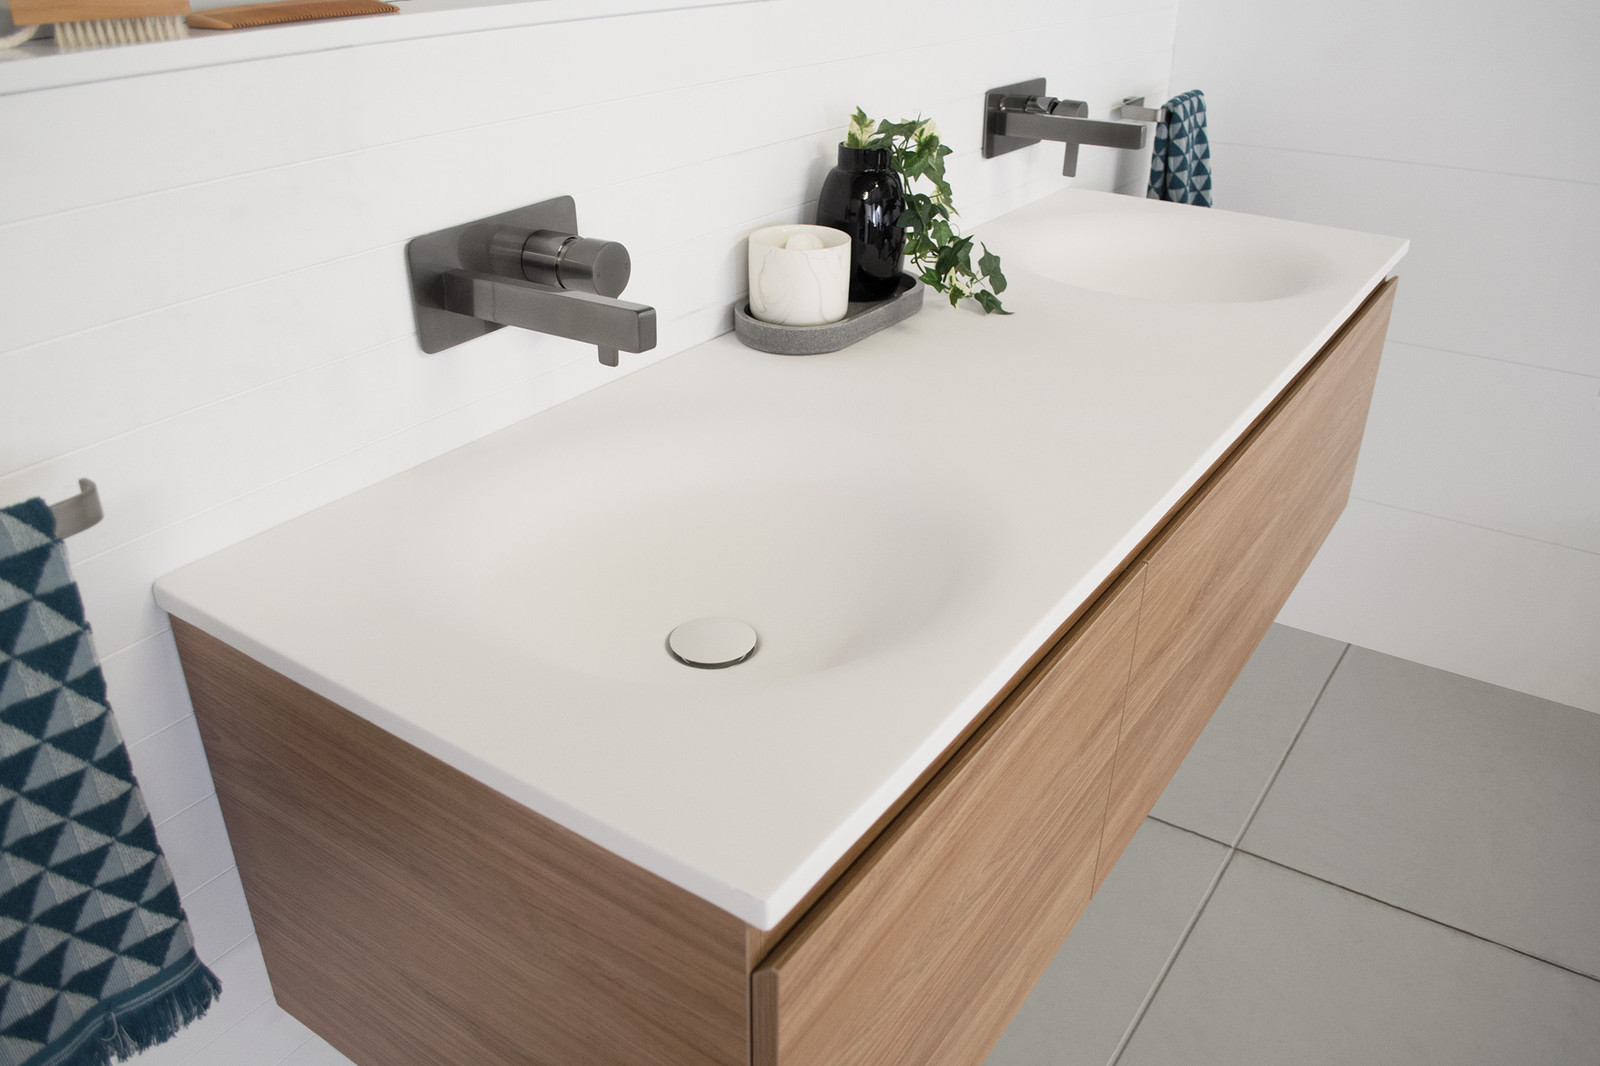 Snow Vanity Architectural Designer Products